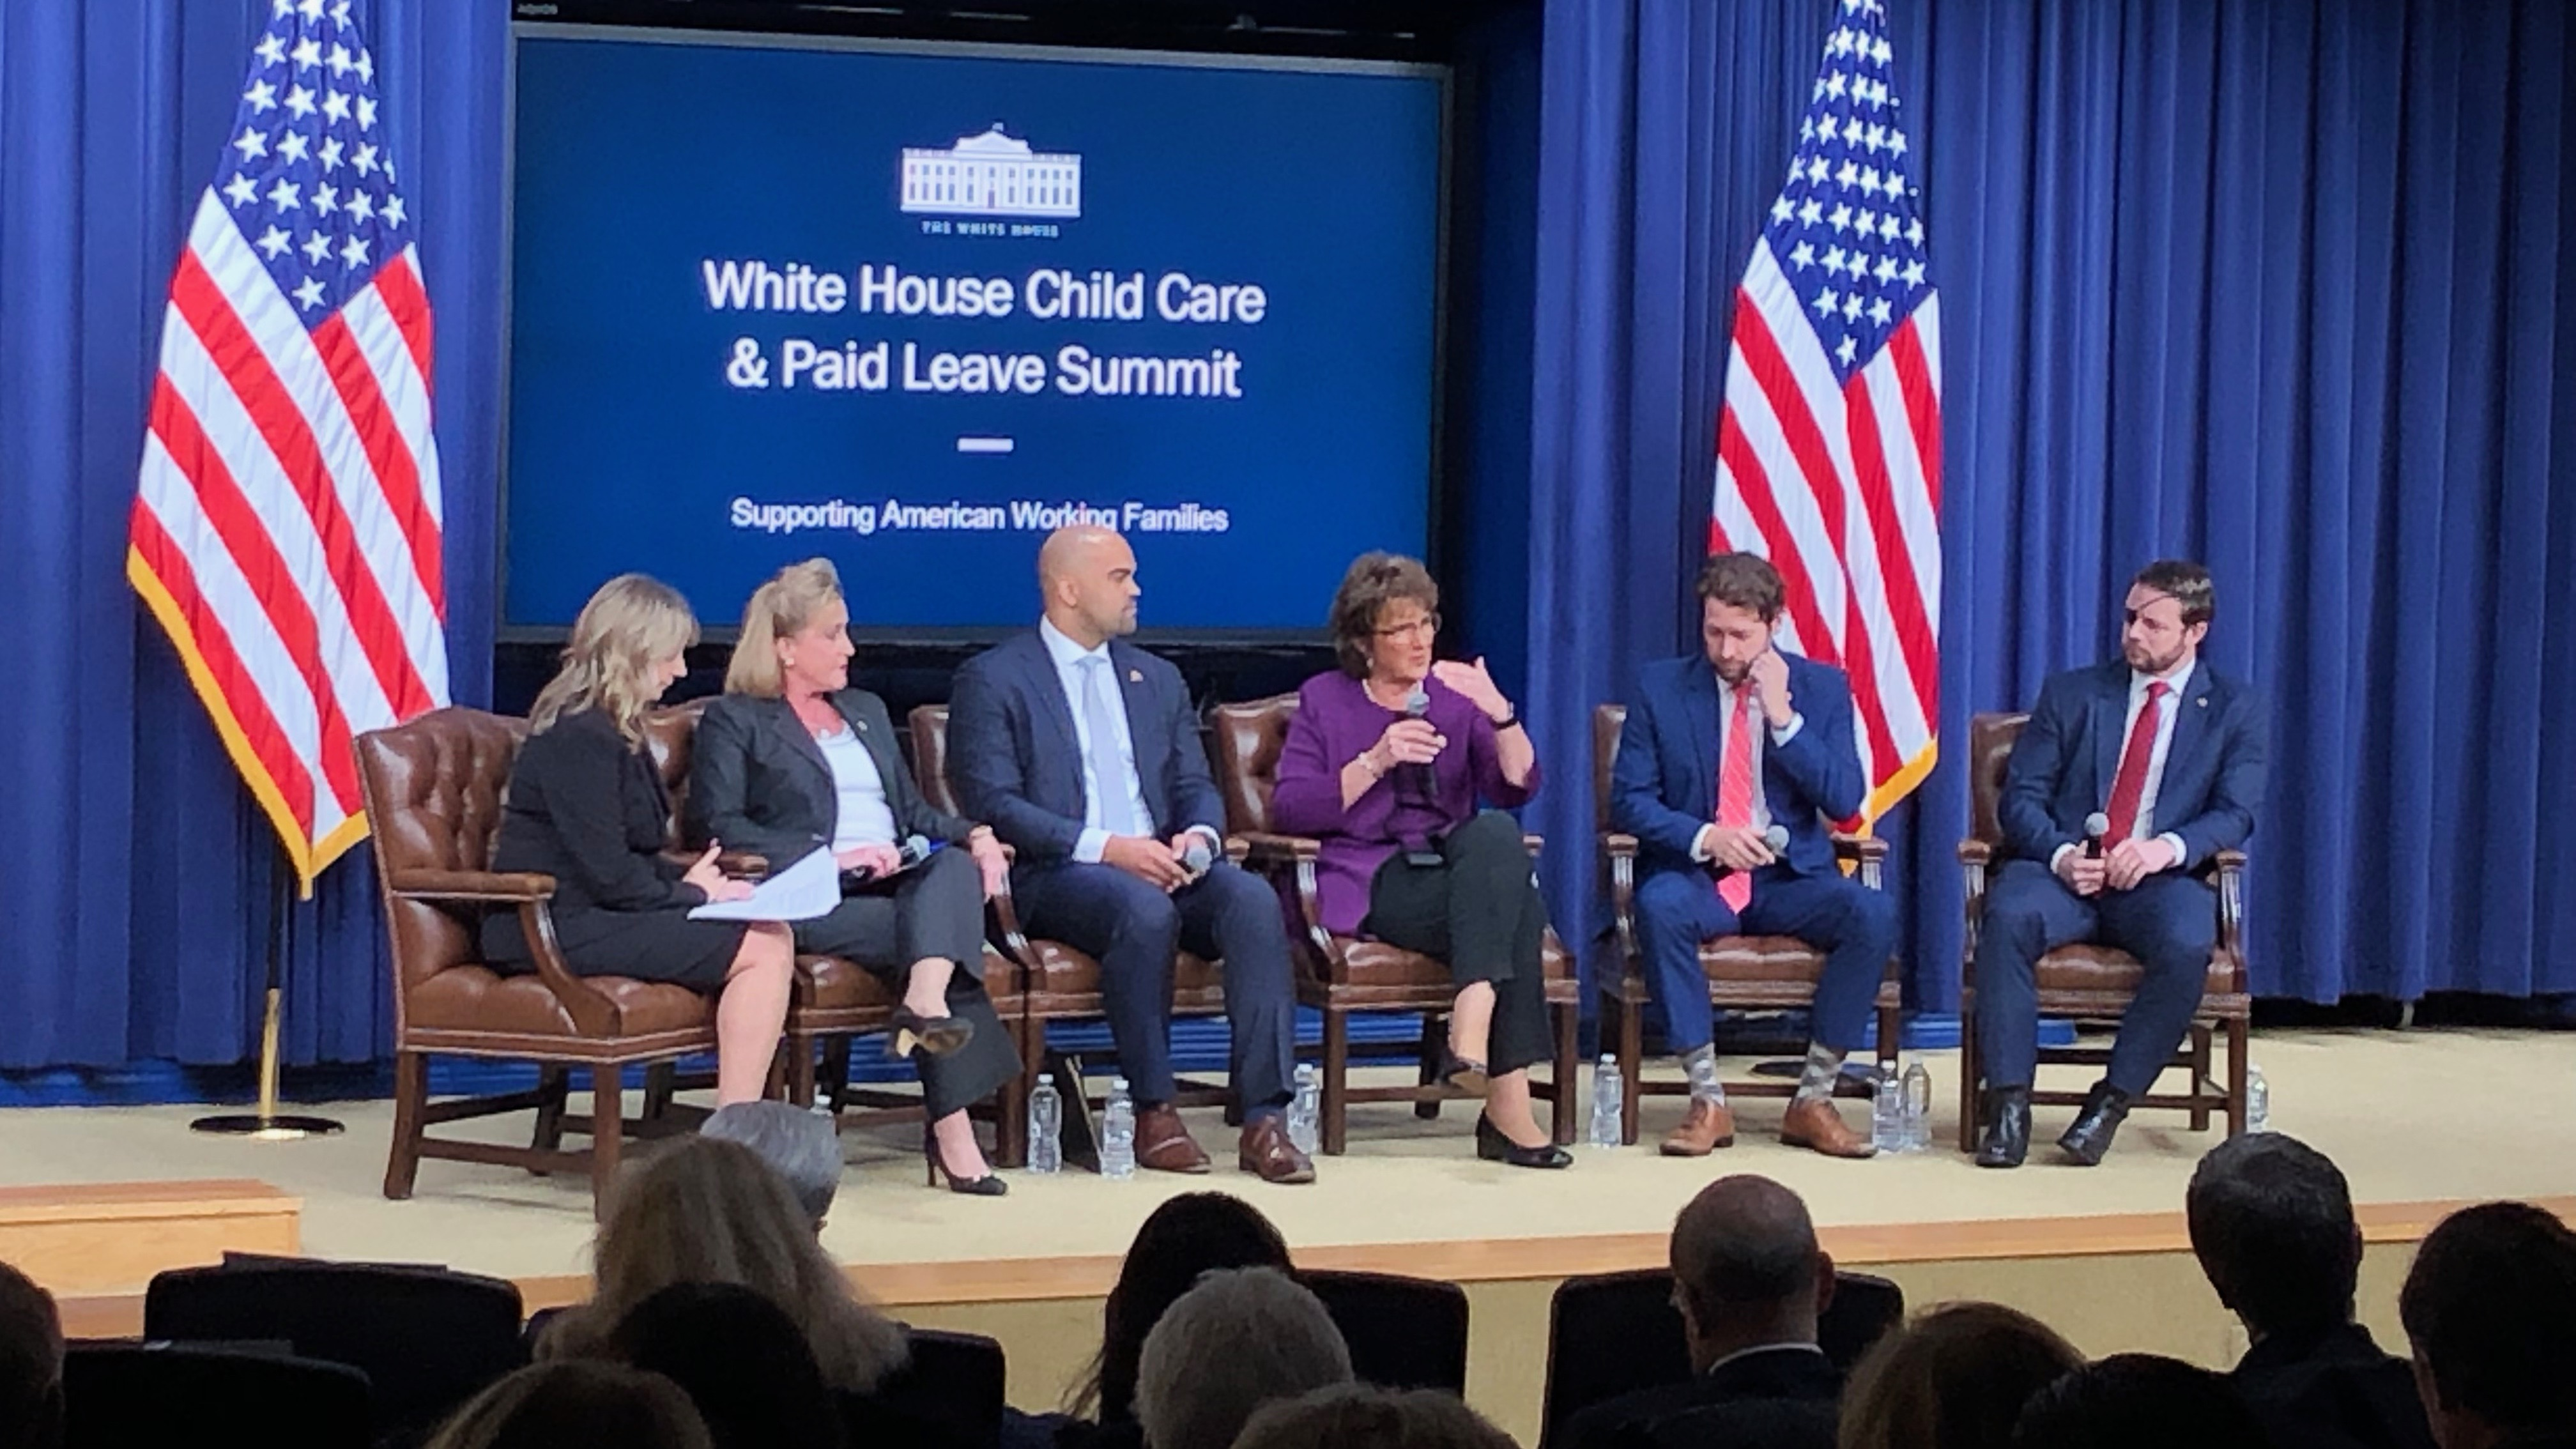 Walorski Takes Part in White House Summit on Paid Family Leave